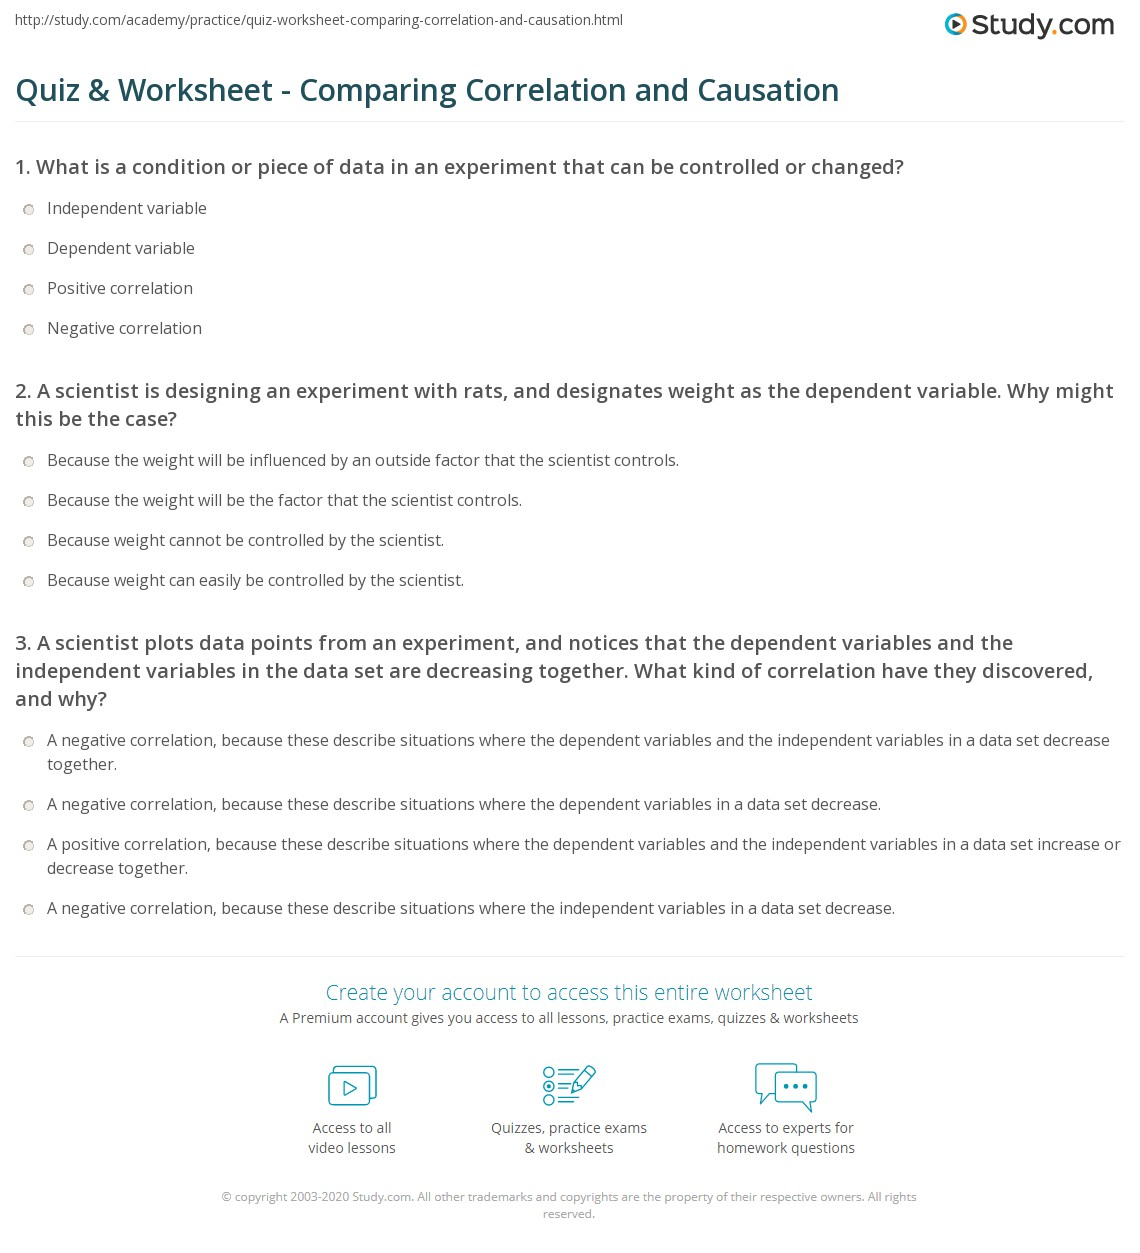 Aldiablosus  Unique Quiz Amp Worksheet  Comparing Correlation And Causation  Studycom With Lovely Print Correlation Vs Causation Differences Amp Definition Worksheet With Breathtaking Codependency Therapy Worksheets Also System Of Equations Worksheets In Addition Massmole Conversion Worksheet And Genetics X Linked Genes Worksheet As Well As Systems Of Linear Equations Worksheets Additionally Life Skills Printable Worksheets For Adults From Studycom With Aldiablosus  Lovely Quiz Amp Worksheet  Comparing Correlation And Causation  Studycom With Breathtaking Print Correlation Vs Causation Differences Amp Definition Worksheet And Unique Codependency Therapy Worksheets Also System Of Equations Worksheets In Addition Massmole Conversion Worksheet From Studycom